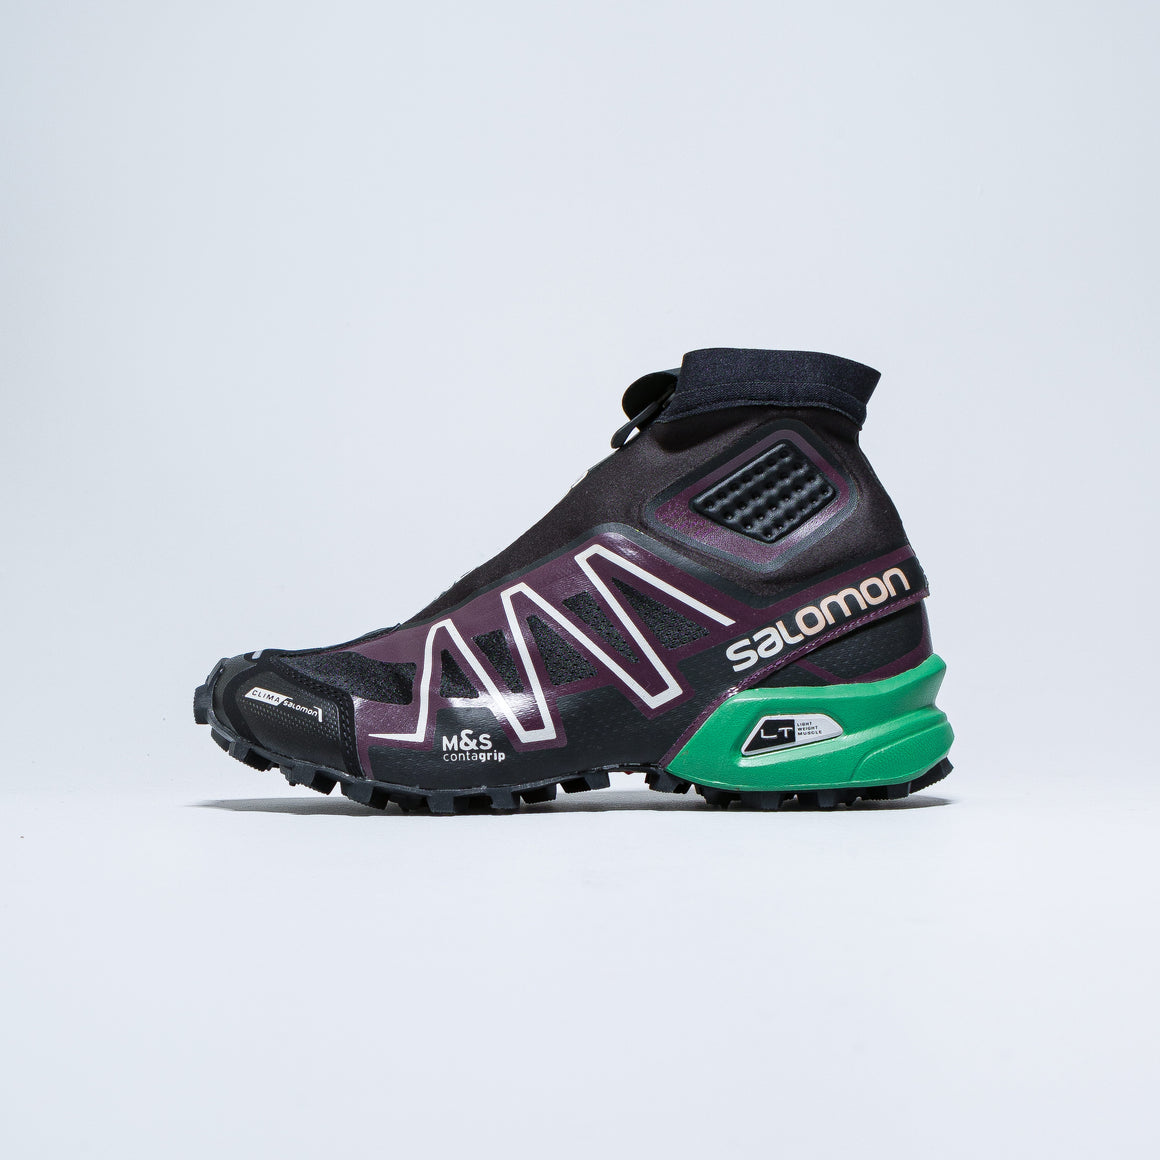 Salomon - Snowcross - Black/Maverick/Amazon - Up There